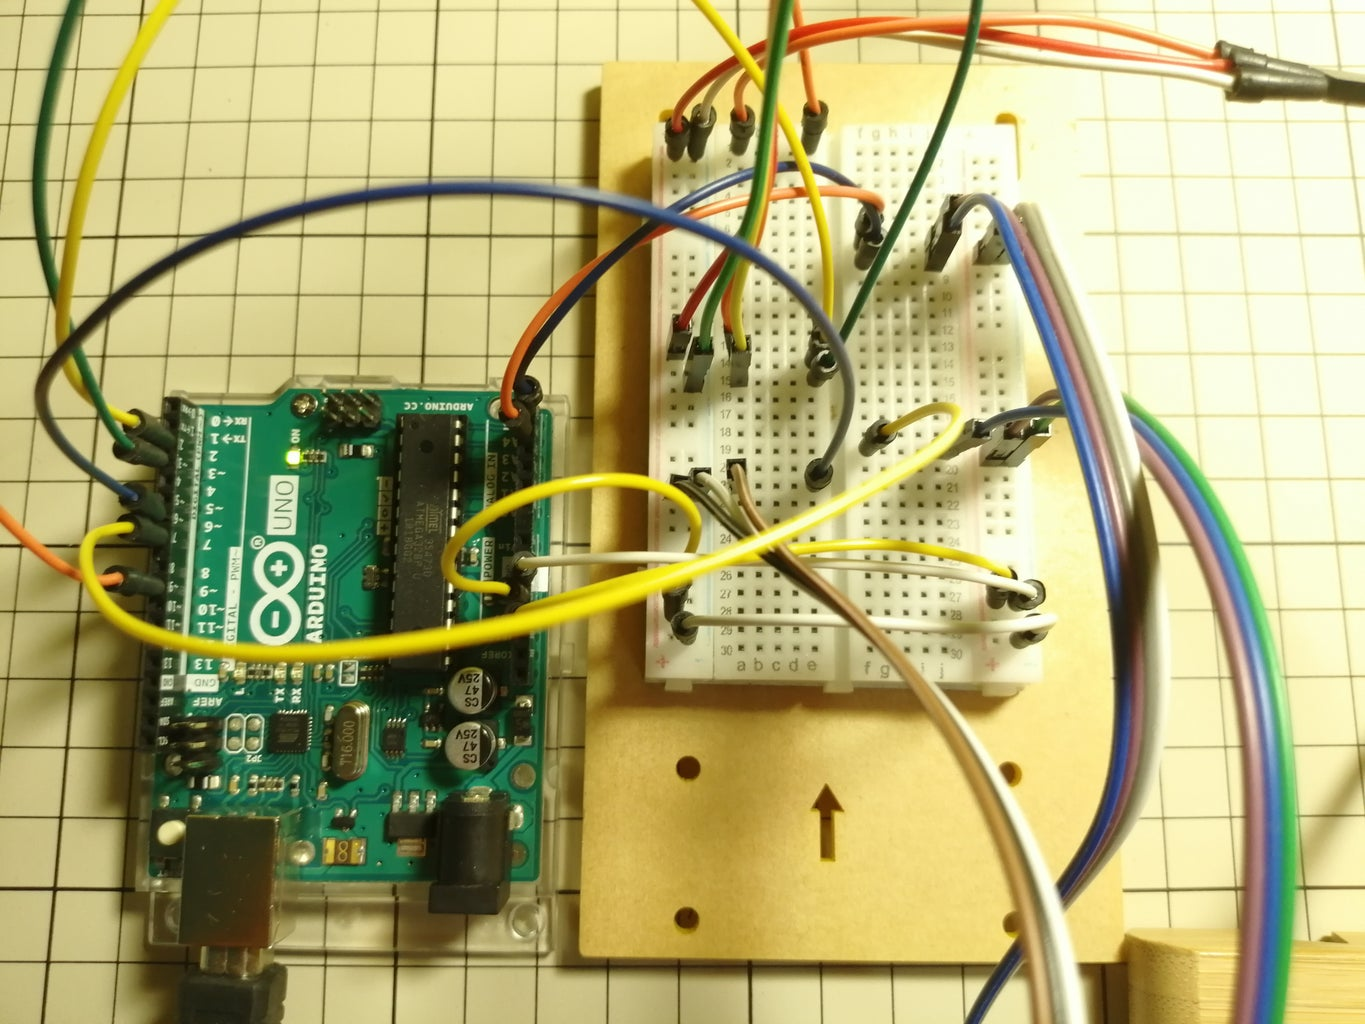 Connect All the Sensors to Arduino Via the Breadboard